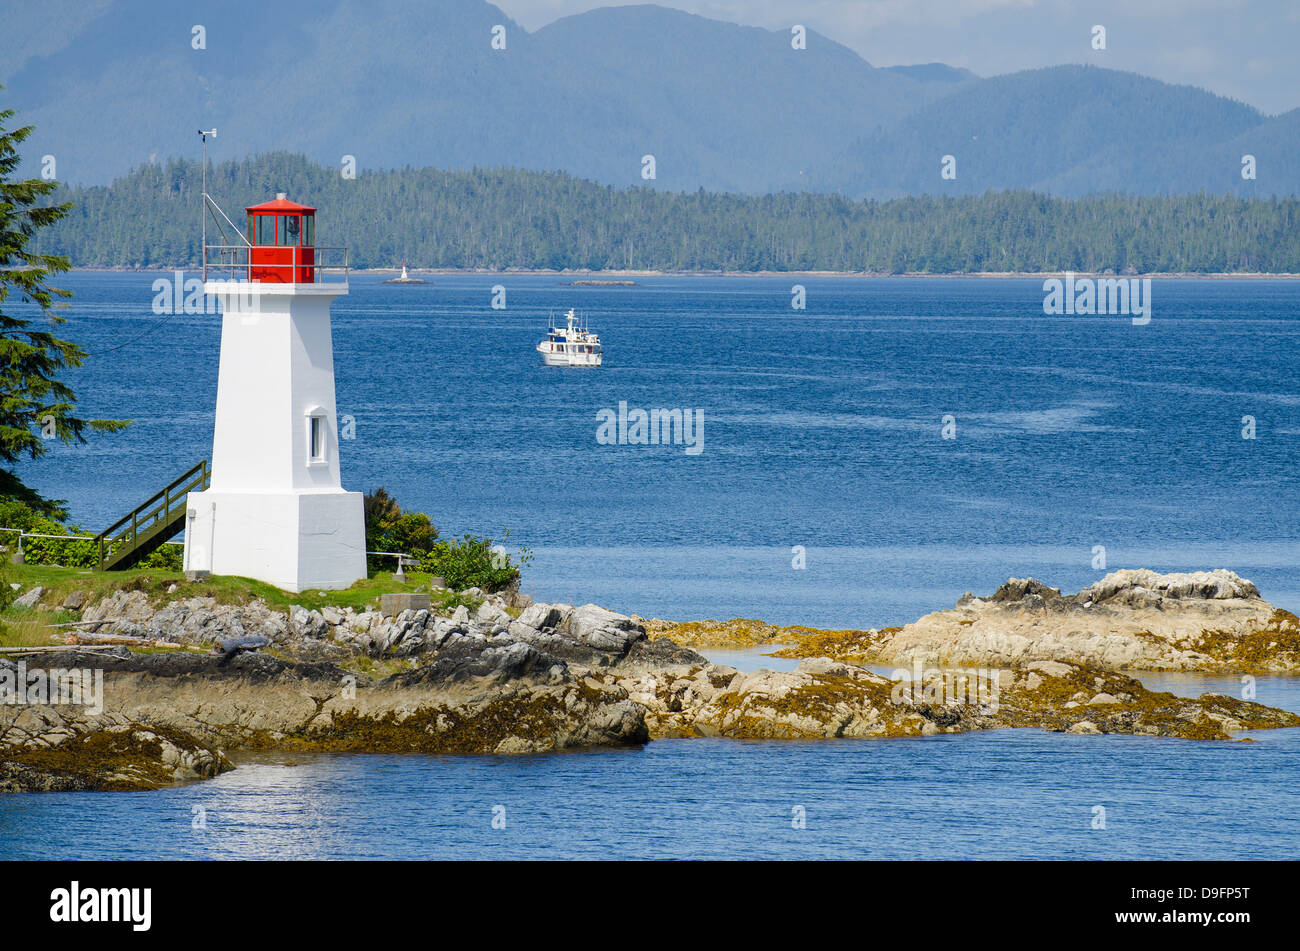 Dryad Point Lightstation, Bella Bella, Inside Passage, British Columbia, Canada - Stock Image